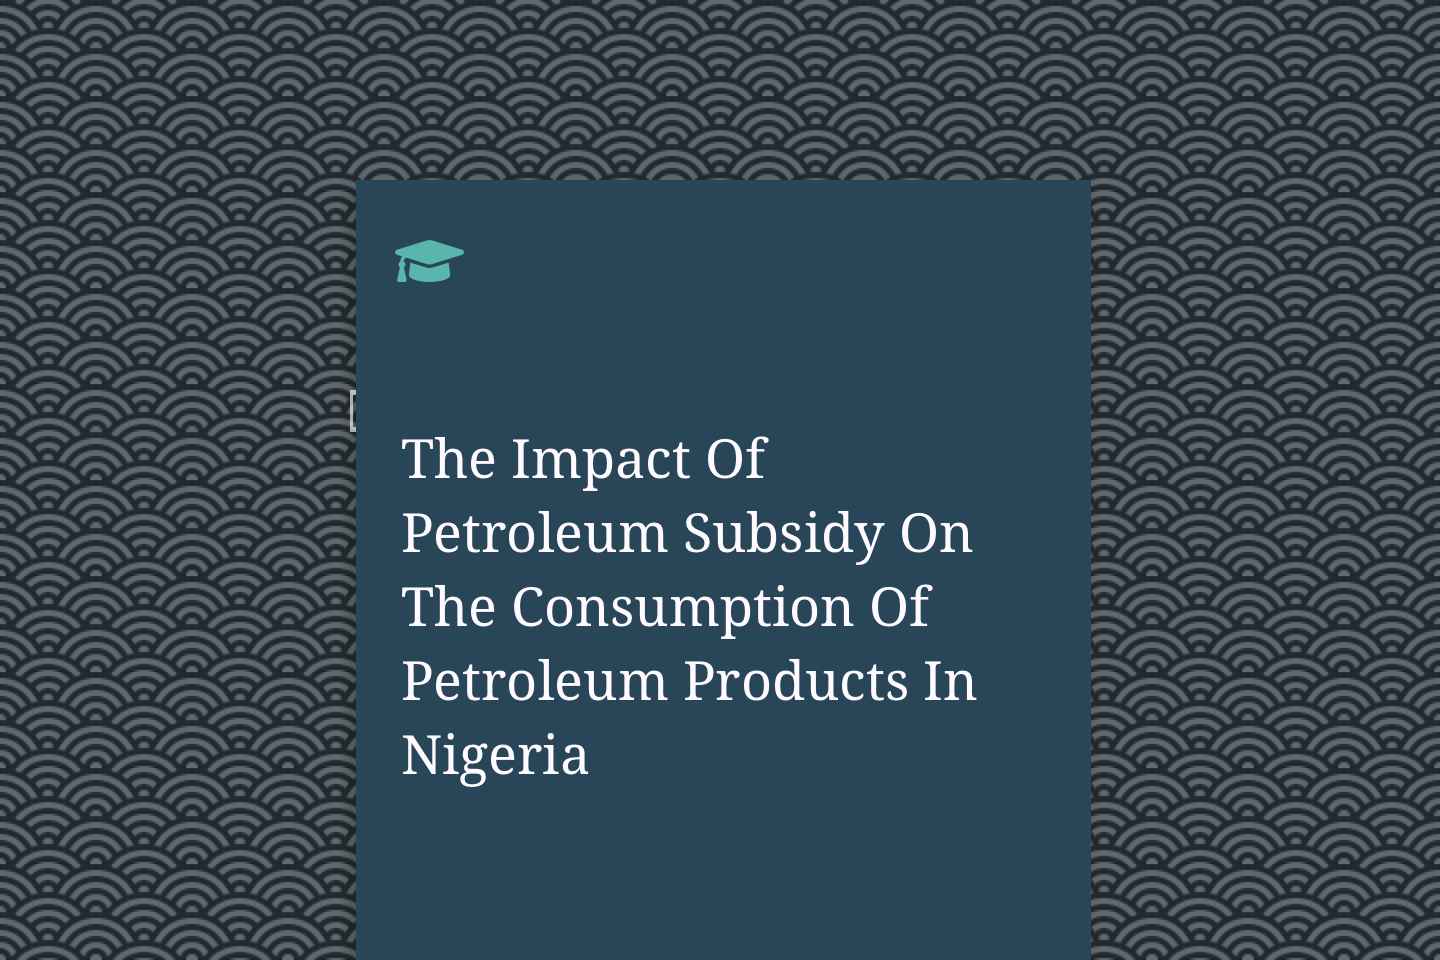 The Impact Of Petroleum Subsidy On The Consumption Of Petroleum Products In Nigeria